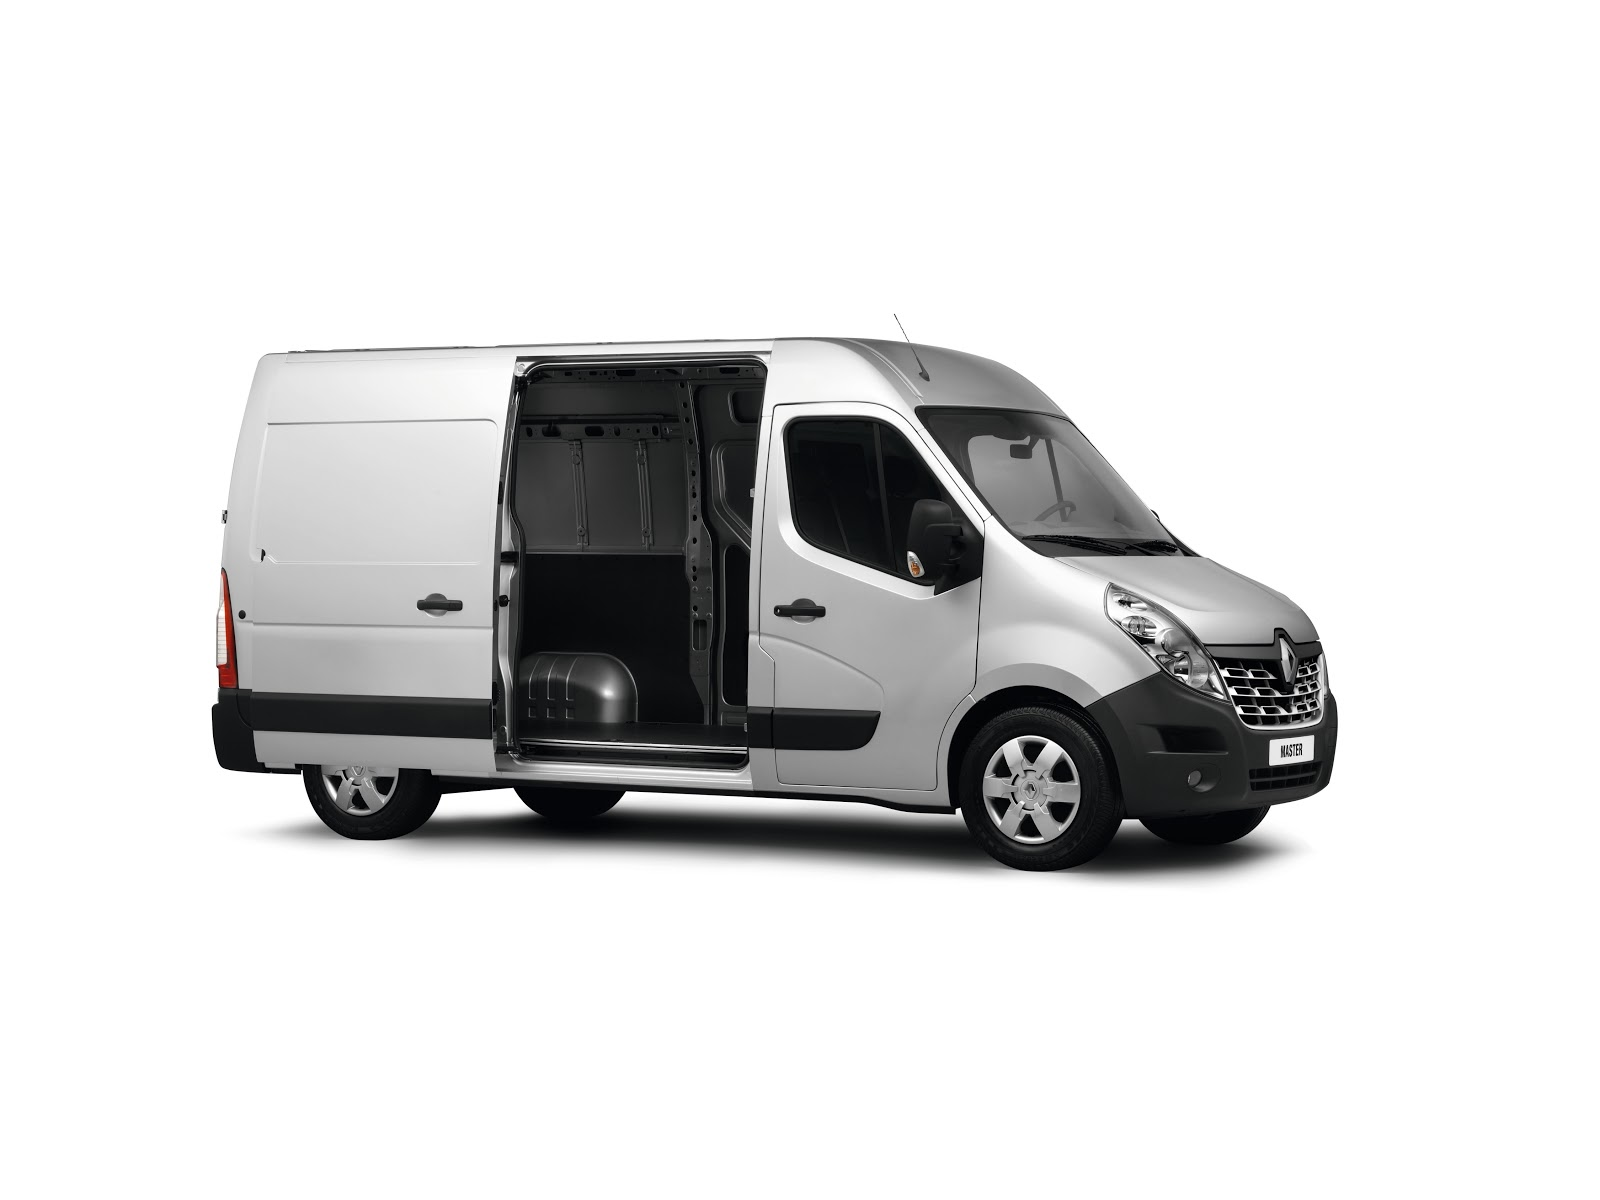 yeni renault master t rkiye 39 de sat a sunuldu turkeycarblog. Black Bedroom Furniture Sets. Home Design Ideas